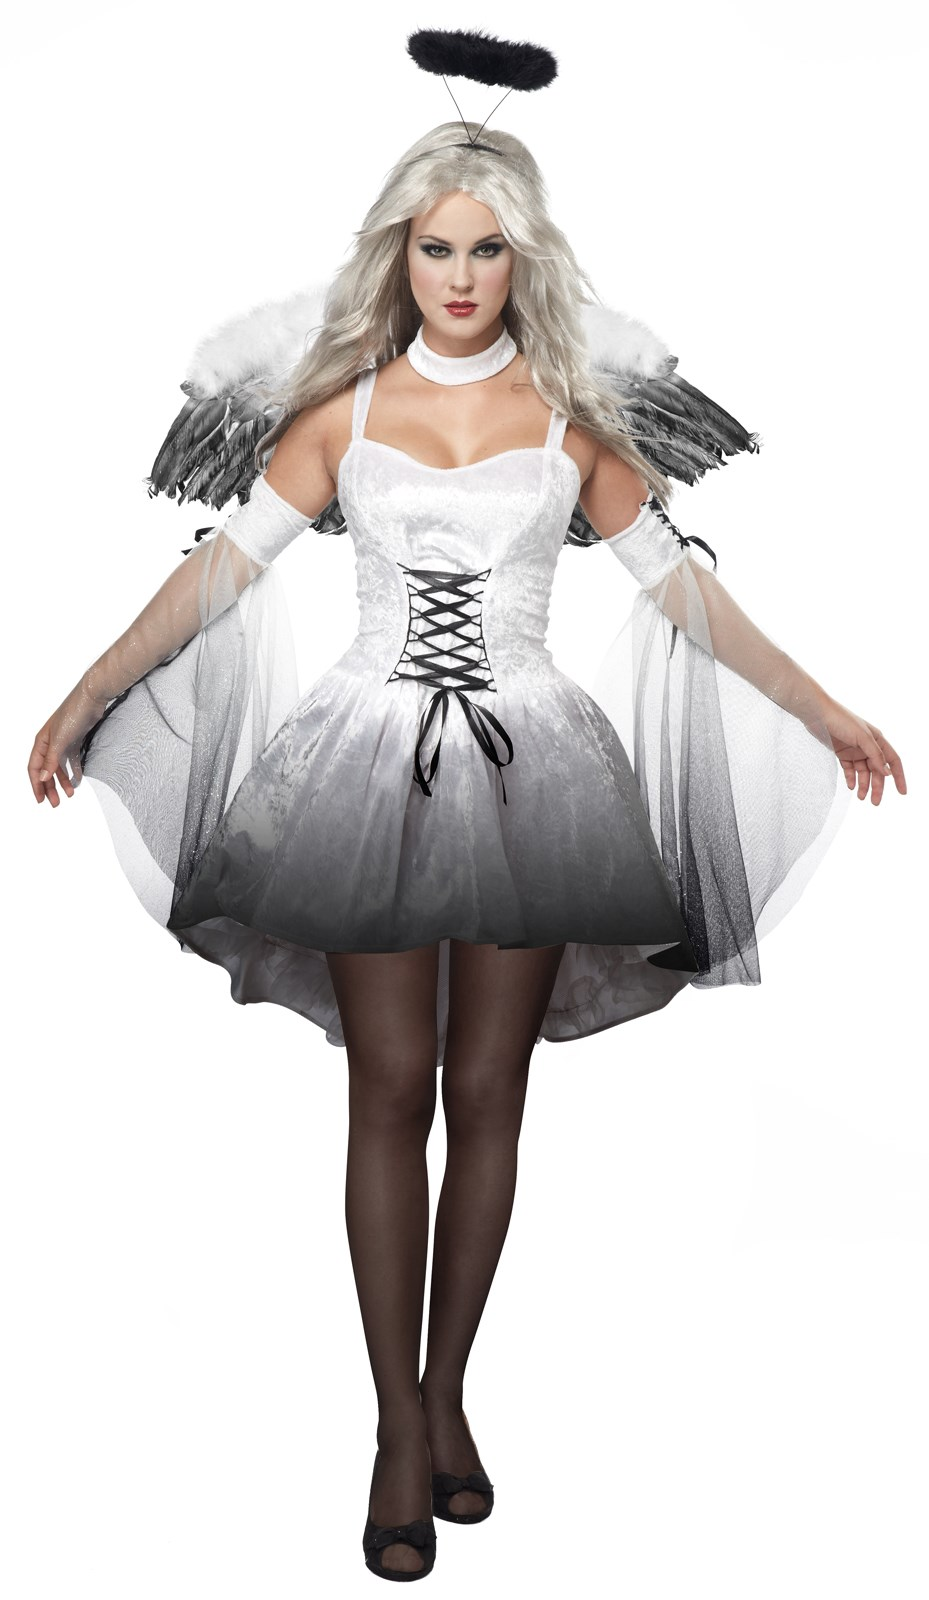 Image of Angel of Darkness Adult Costume